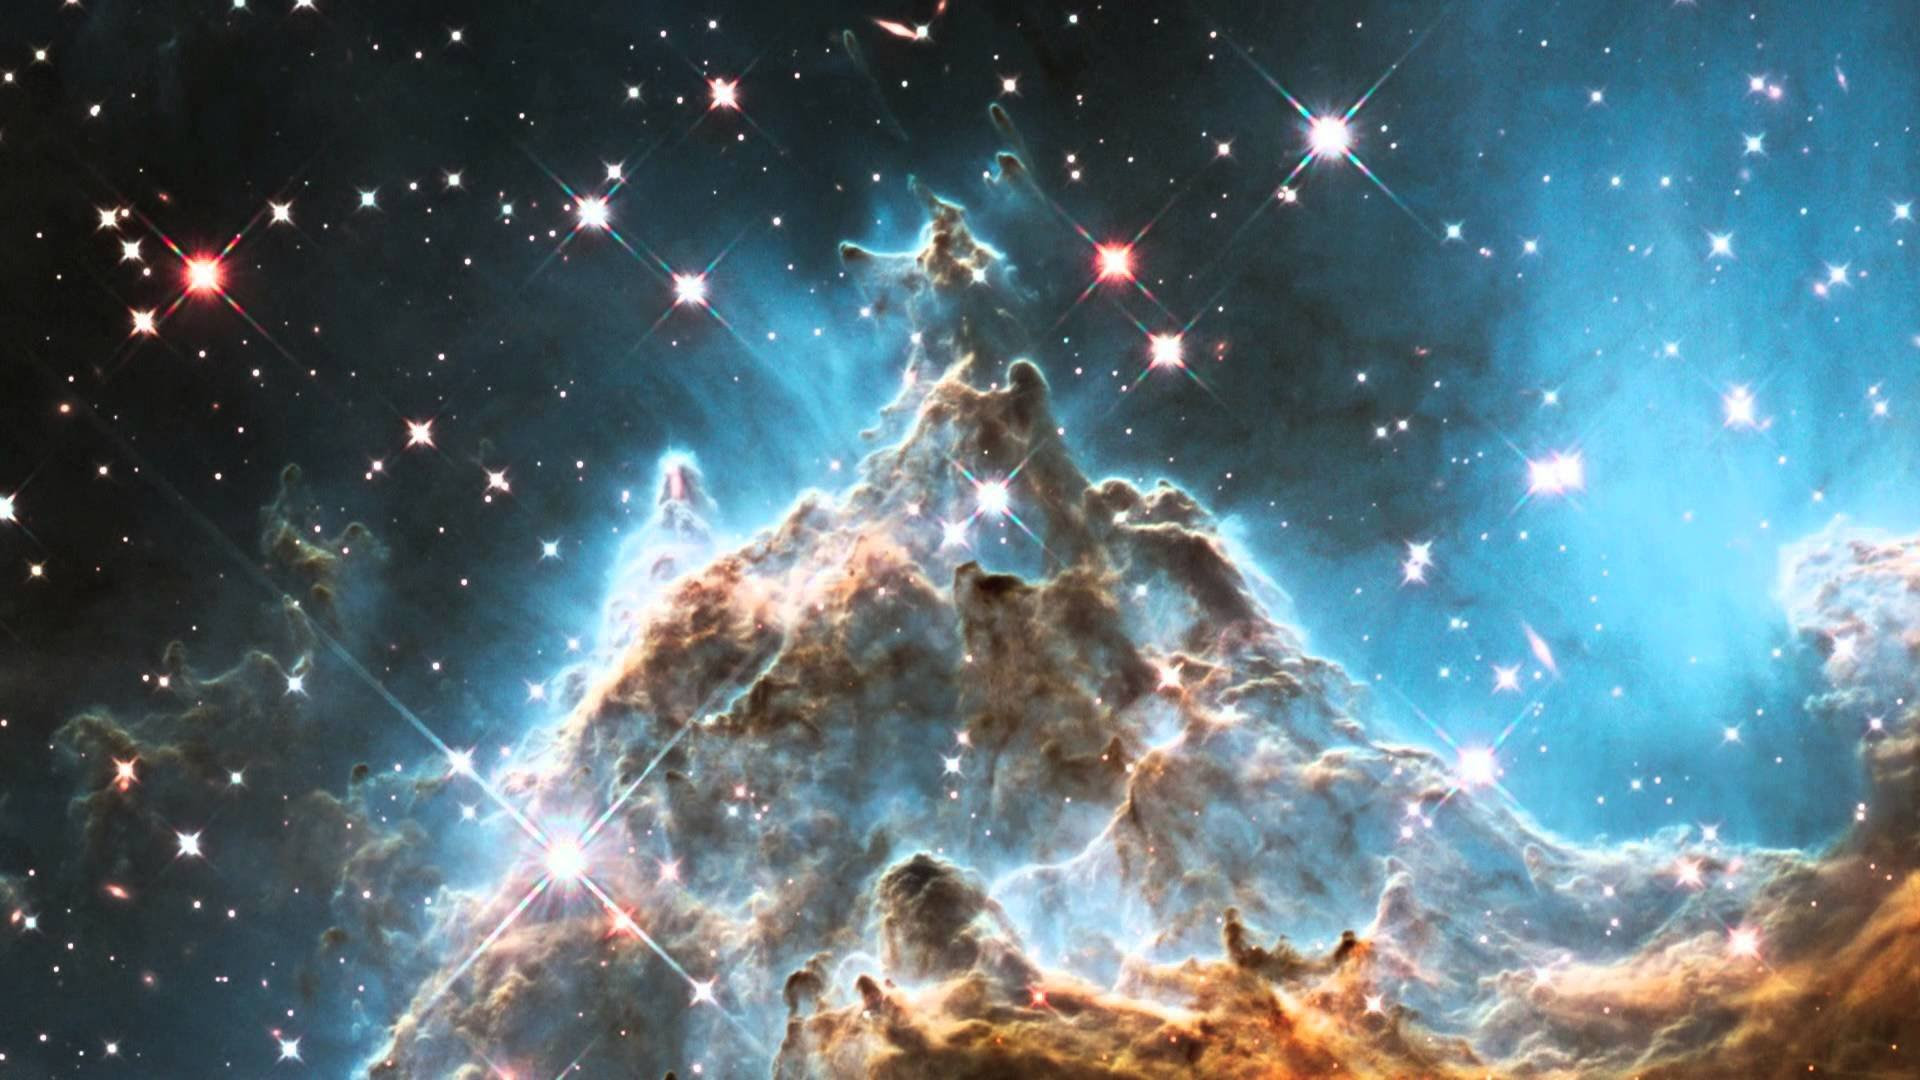 Download Free Hubble Wallpapers 1920×1080 | PixelsTalk.Net